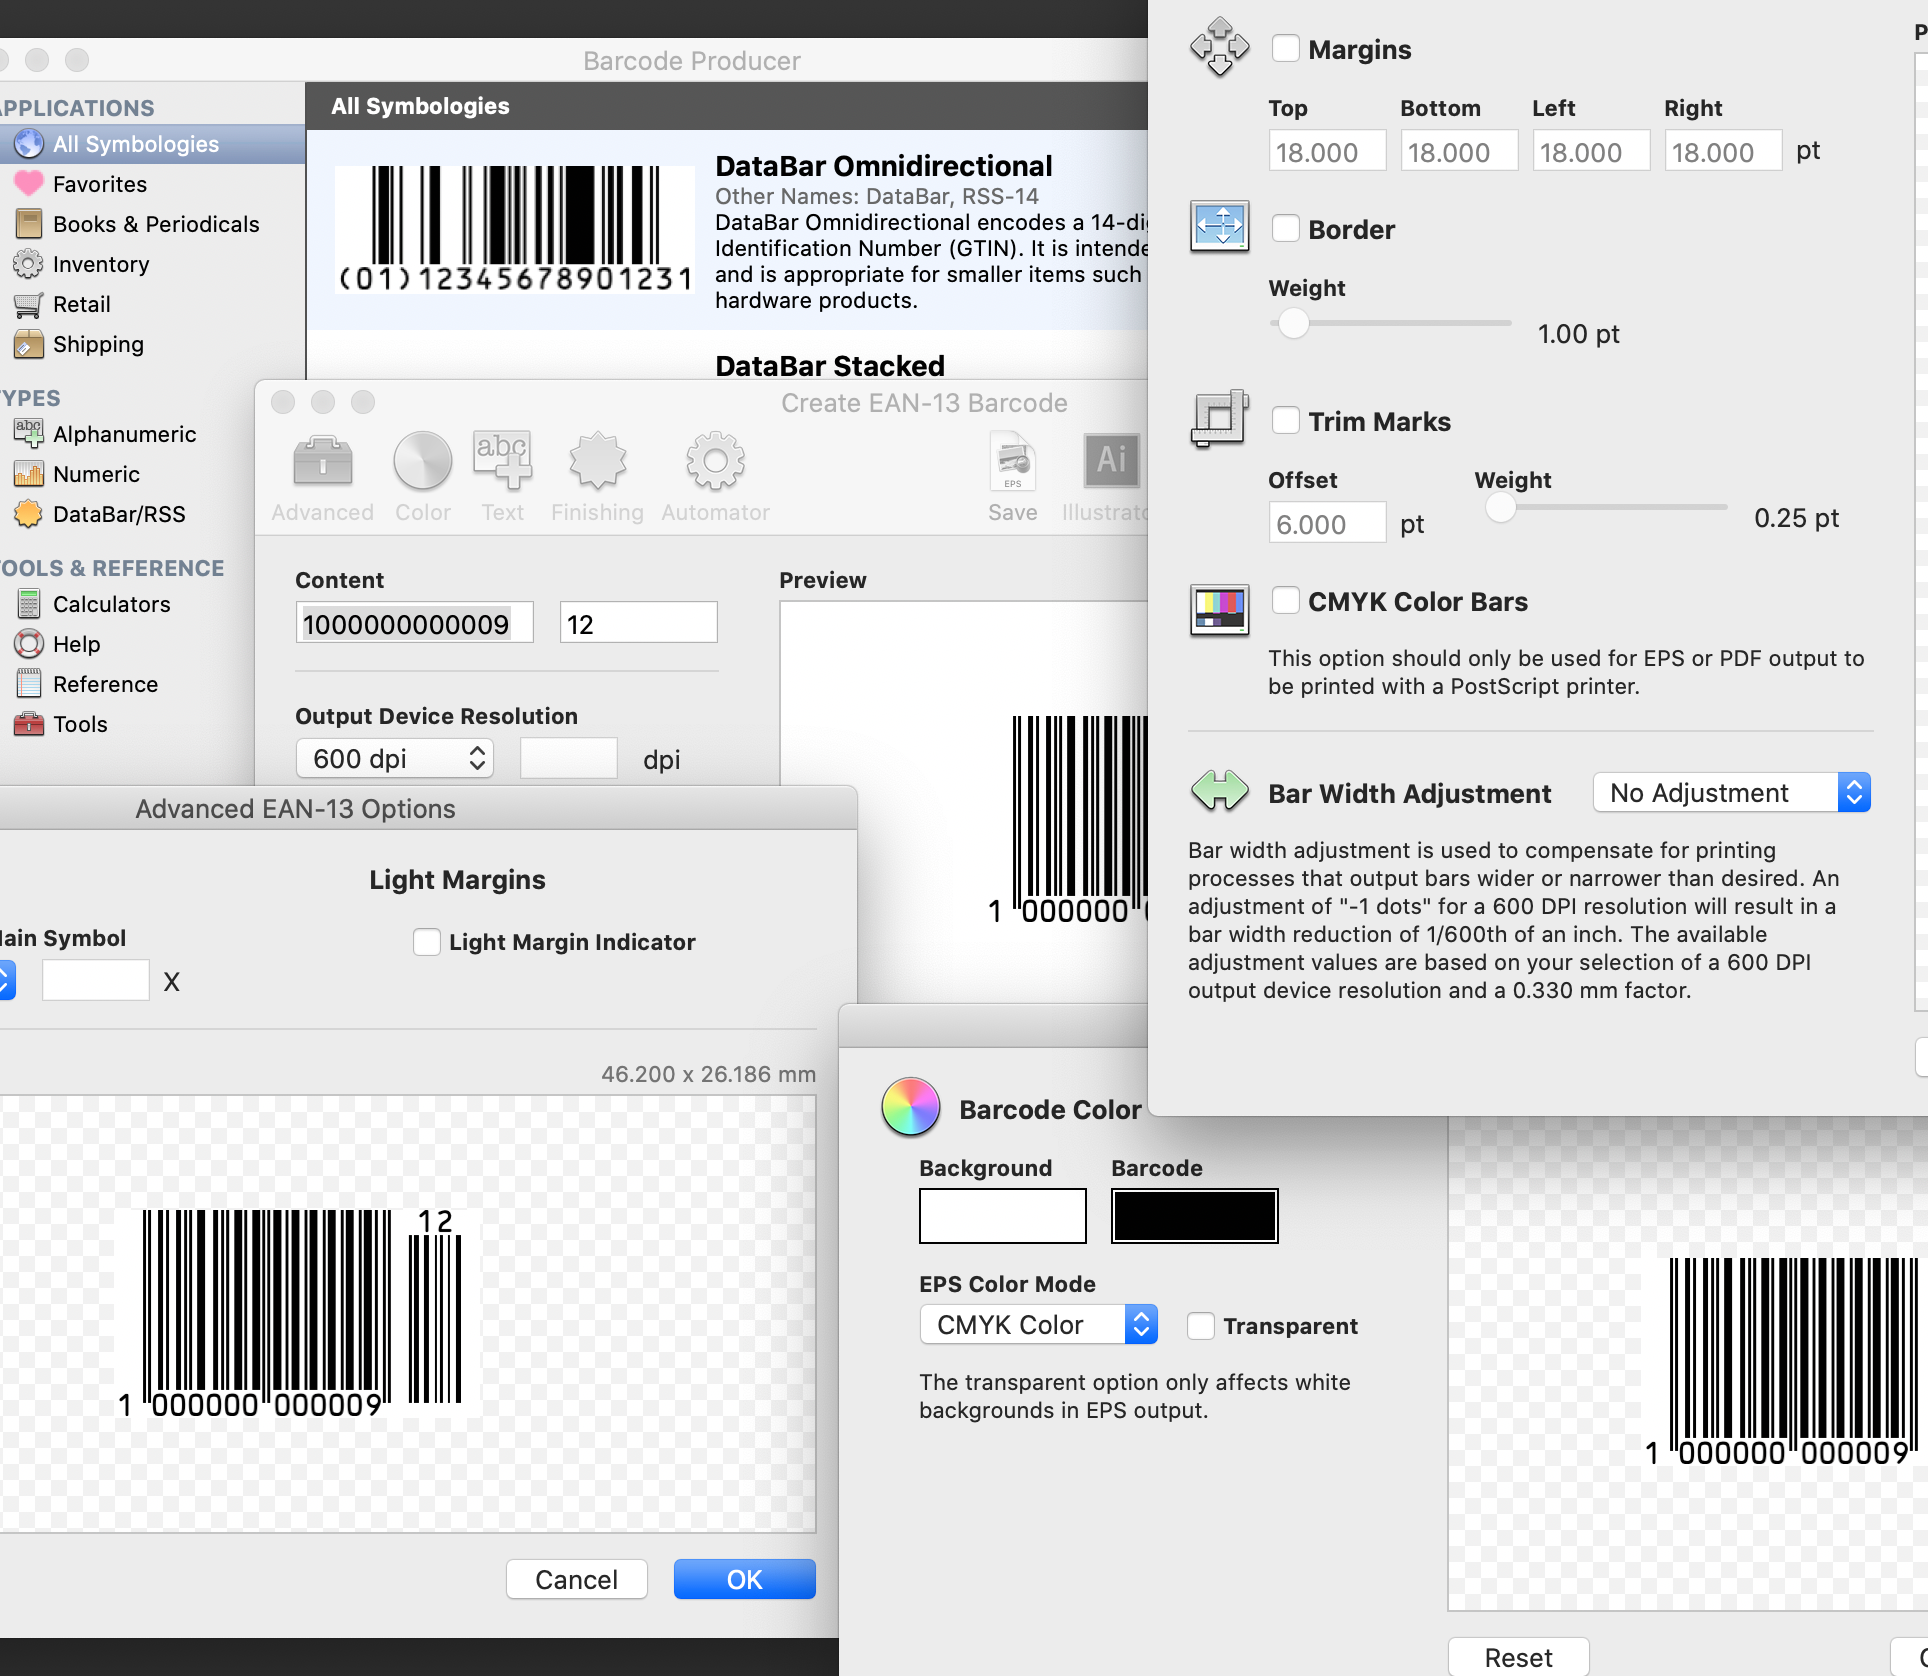 A composite of Barcode Producer screenshots to demonstrate its power and versatility